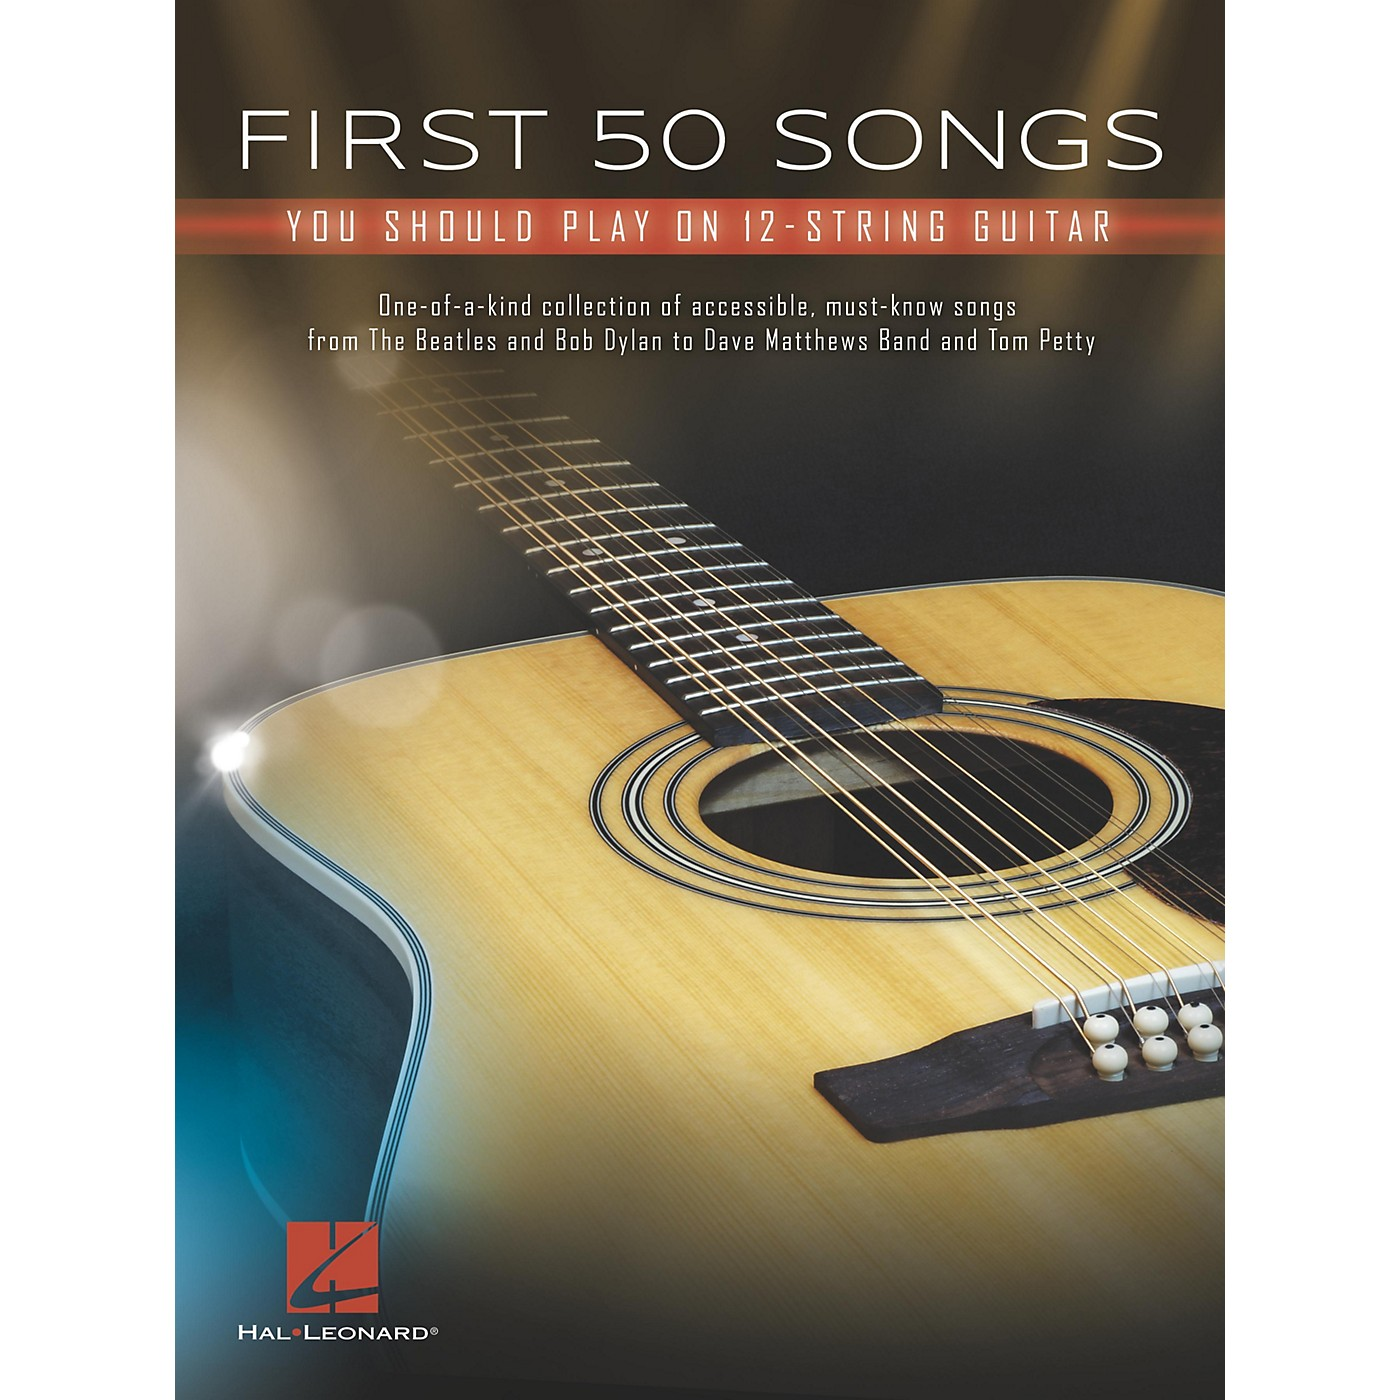 Hal Leonard First 50 Songs You Should Play on 12-String Guitar thumbnail